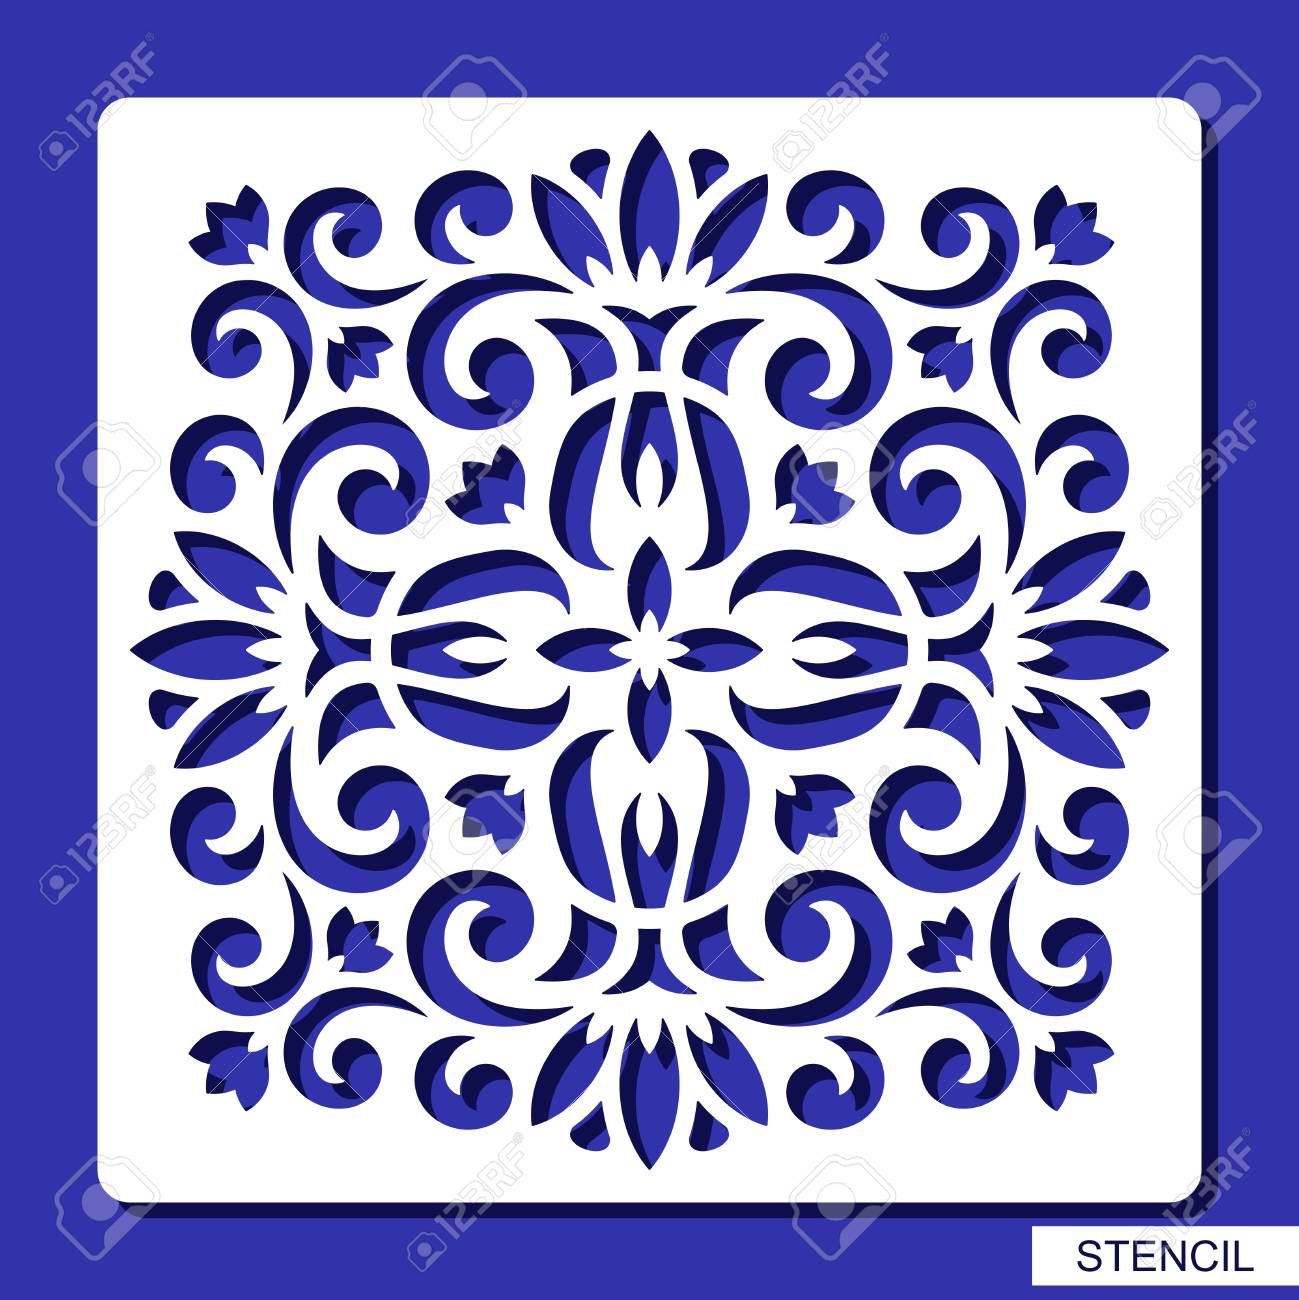 template for laser cutting wood carving paper cut and printing - Free Laser Cutter Templates